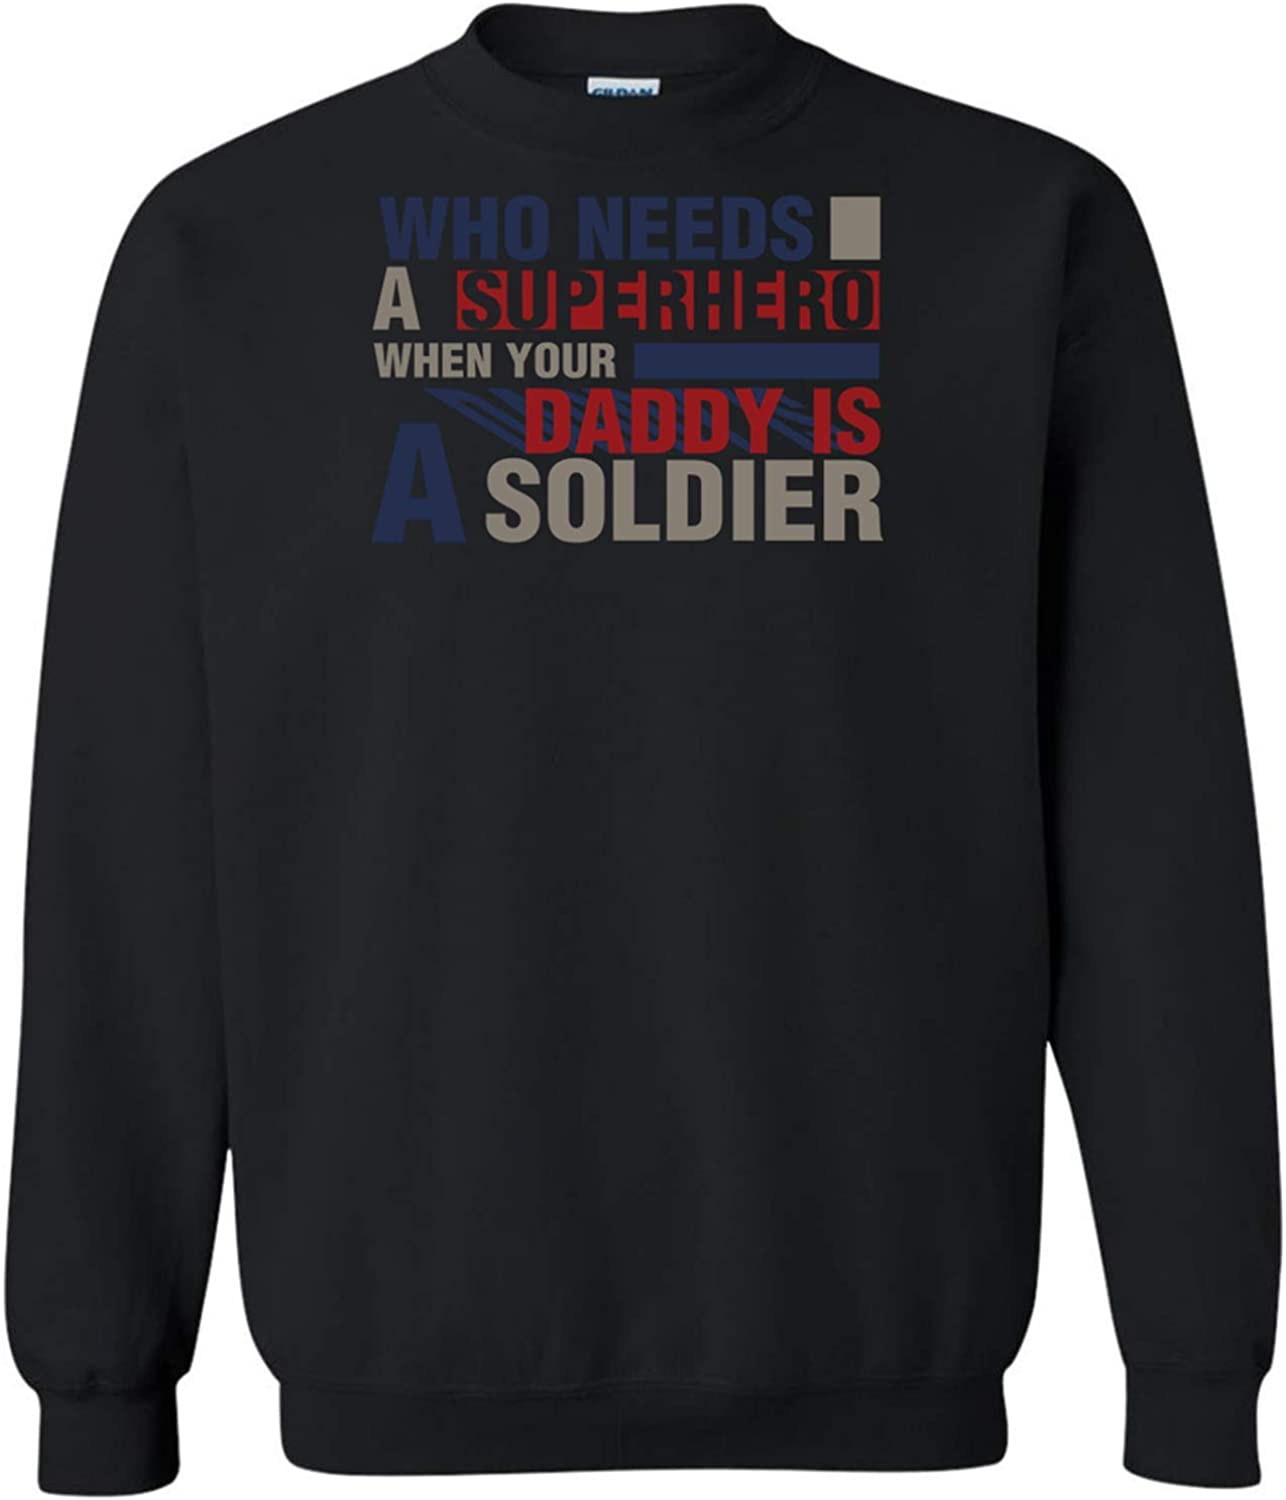 Who Needs A Superhero When Your Daddy is A Soldier Gifts Sweatshirt